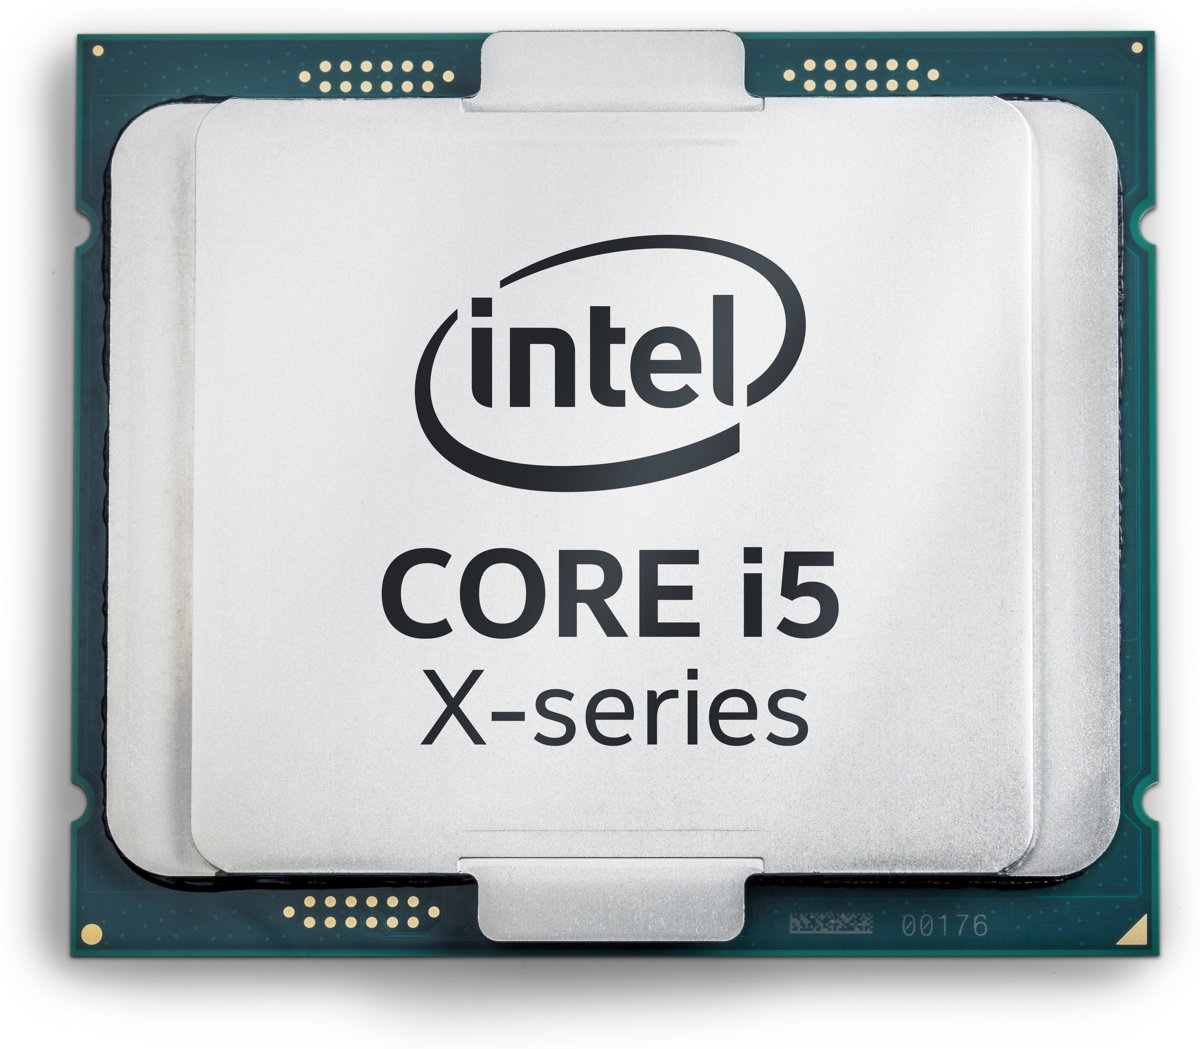 Core ® ™ i5-7640X X-series Processor (6M Cache, up to 4.20 GHz) 4GHz 6MB Smart Cache Box processor